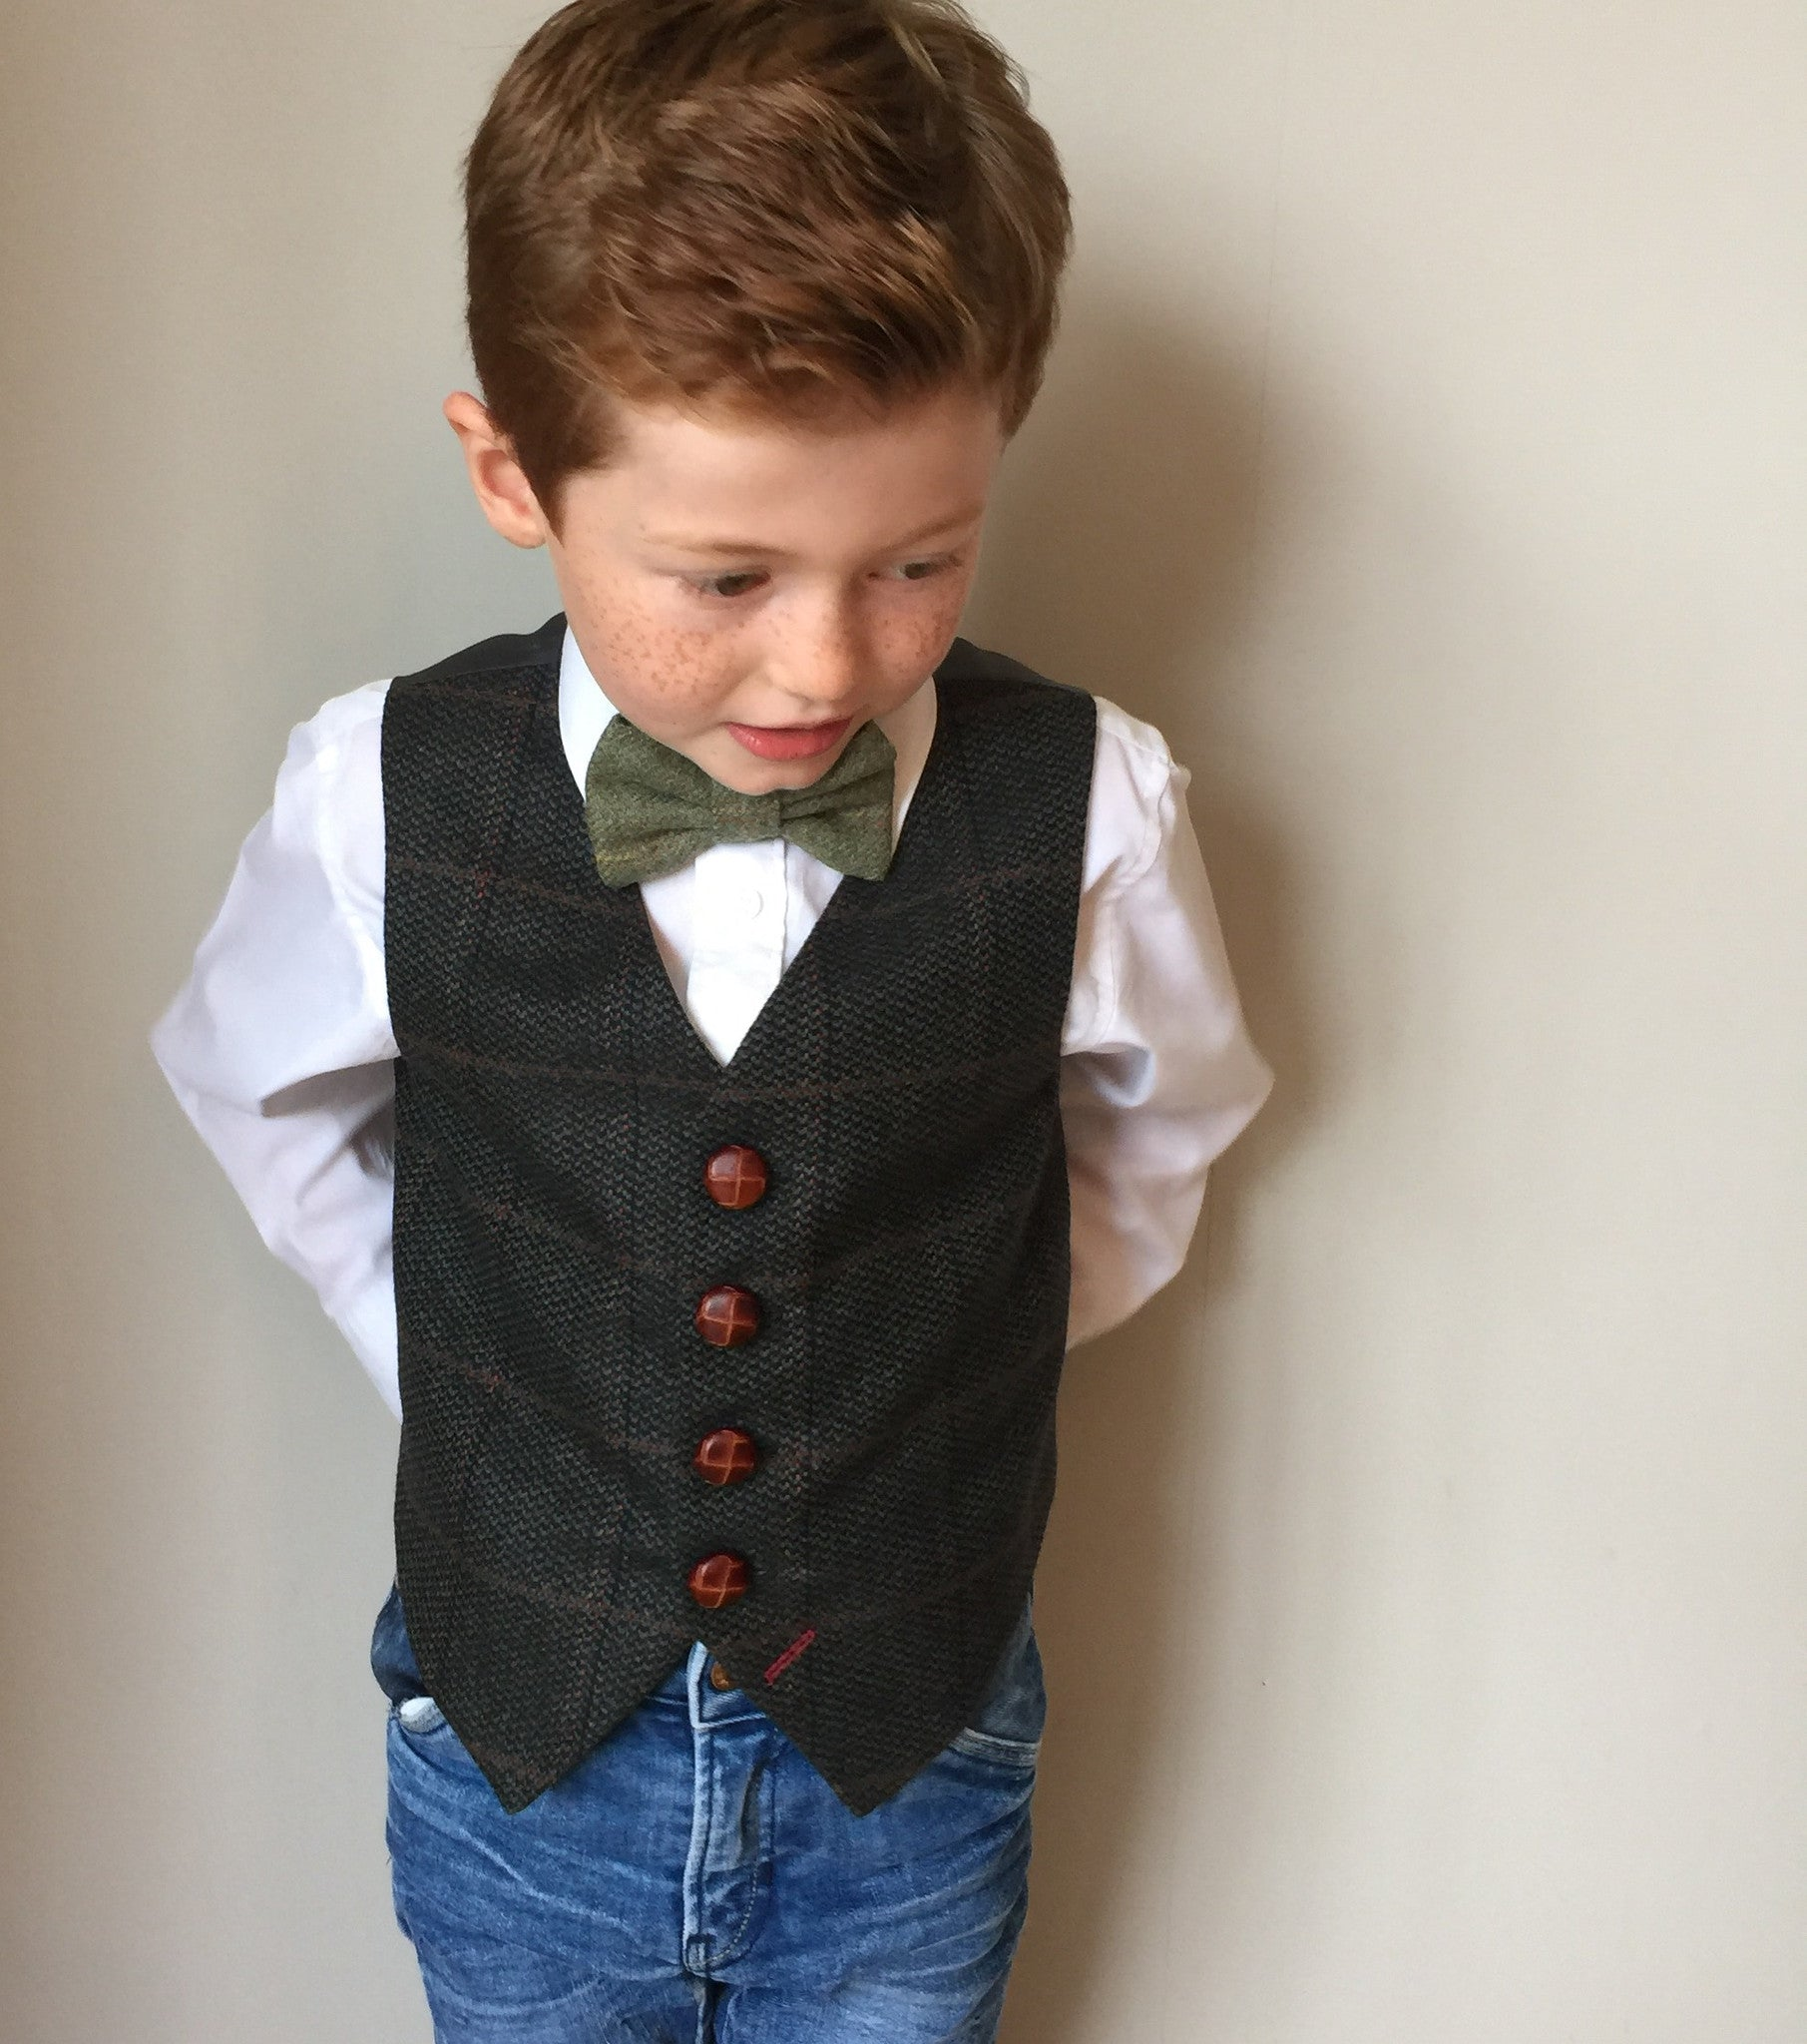 sample 'Copperfield' 5-6 years Boys waistcoat handmade in a wool check